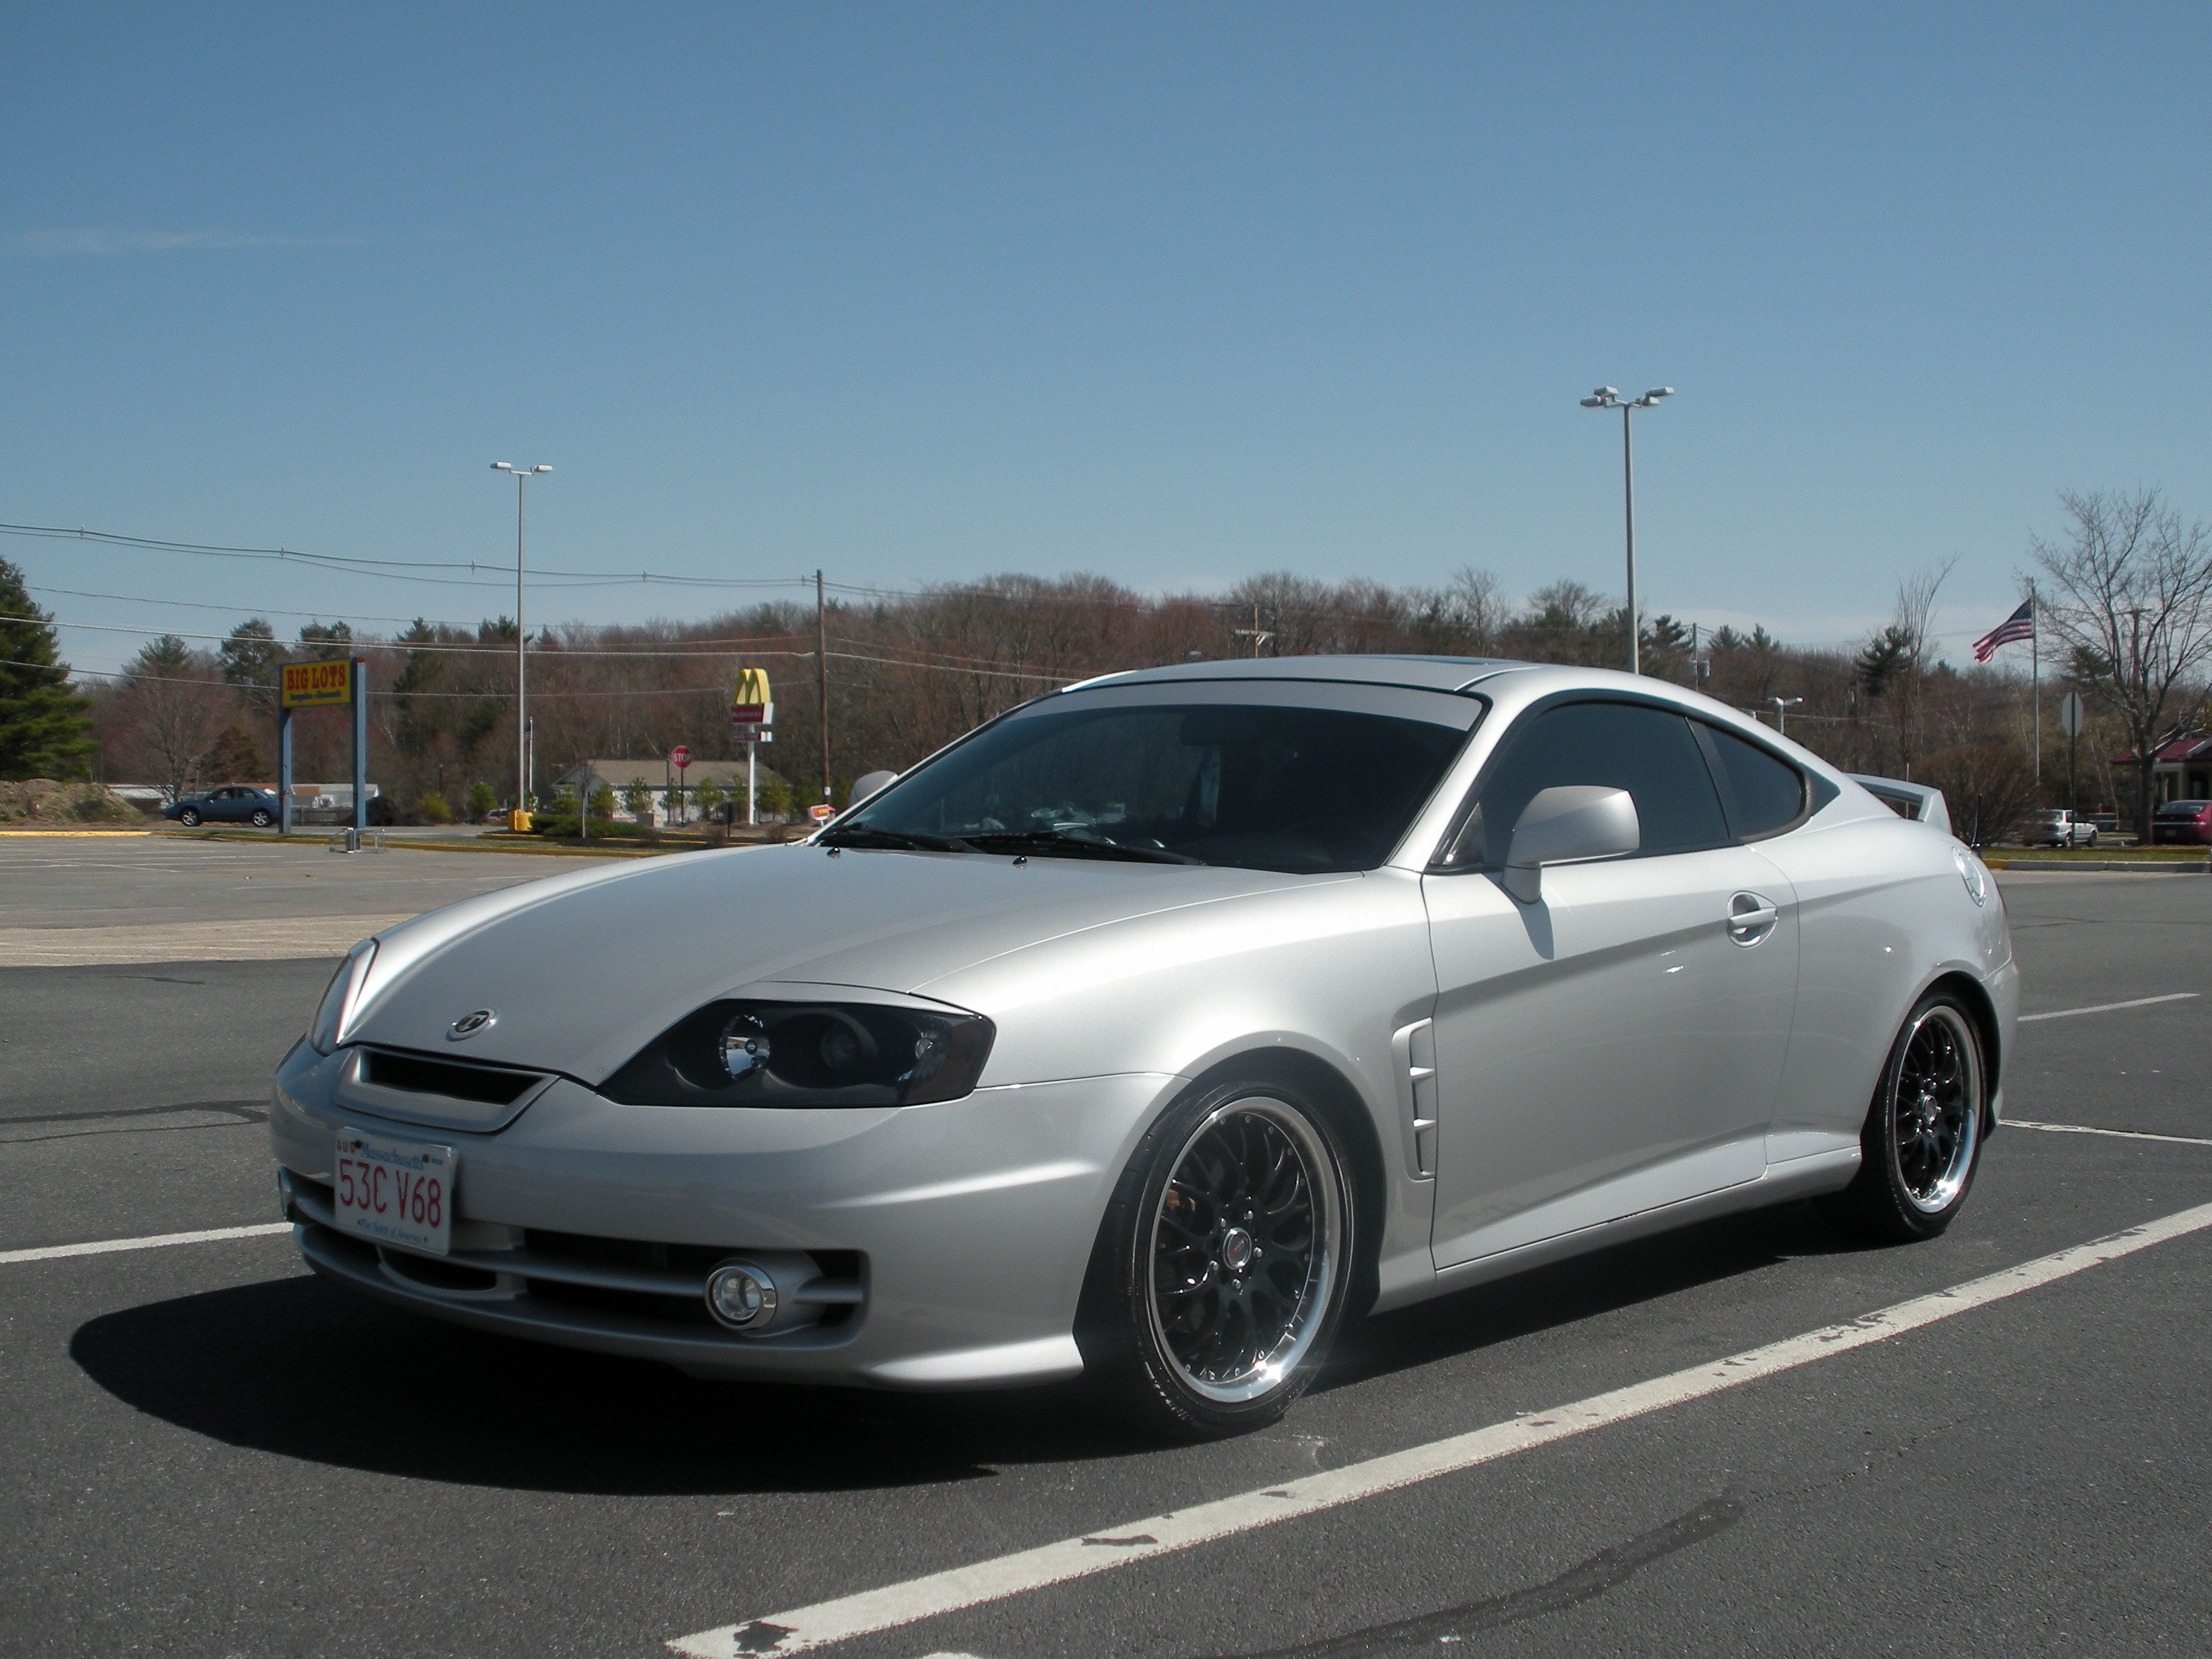 Gray Hyundai Tiburon 138 Y Cars V6 Car Accessories